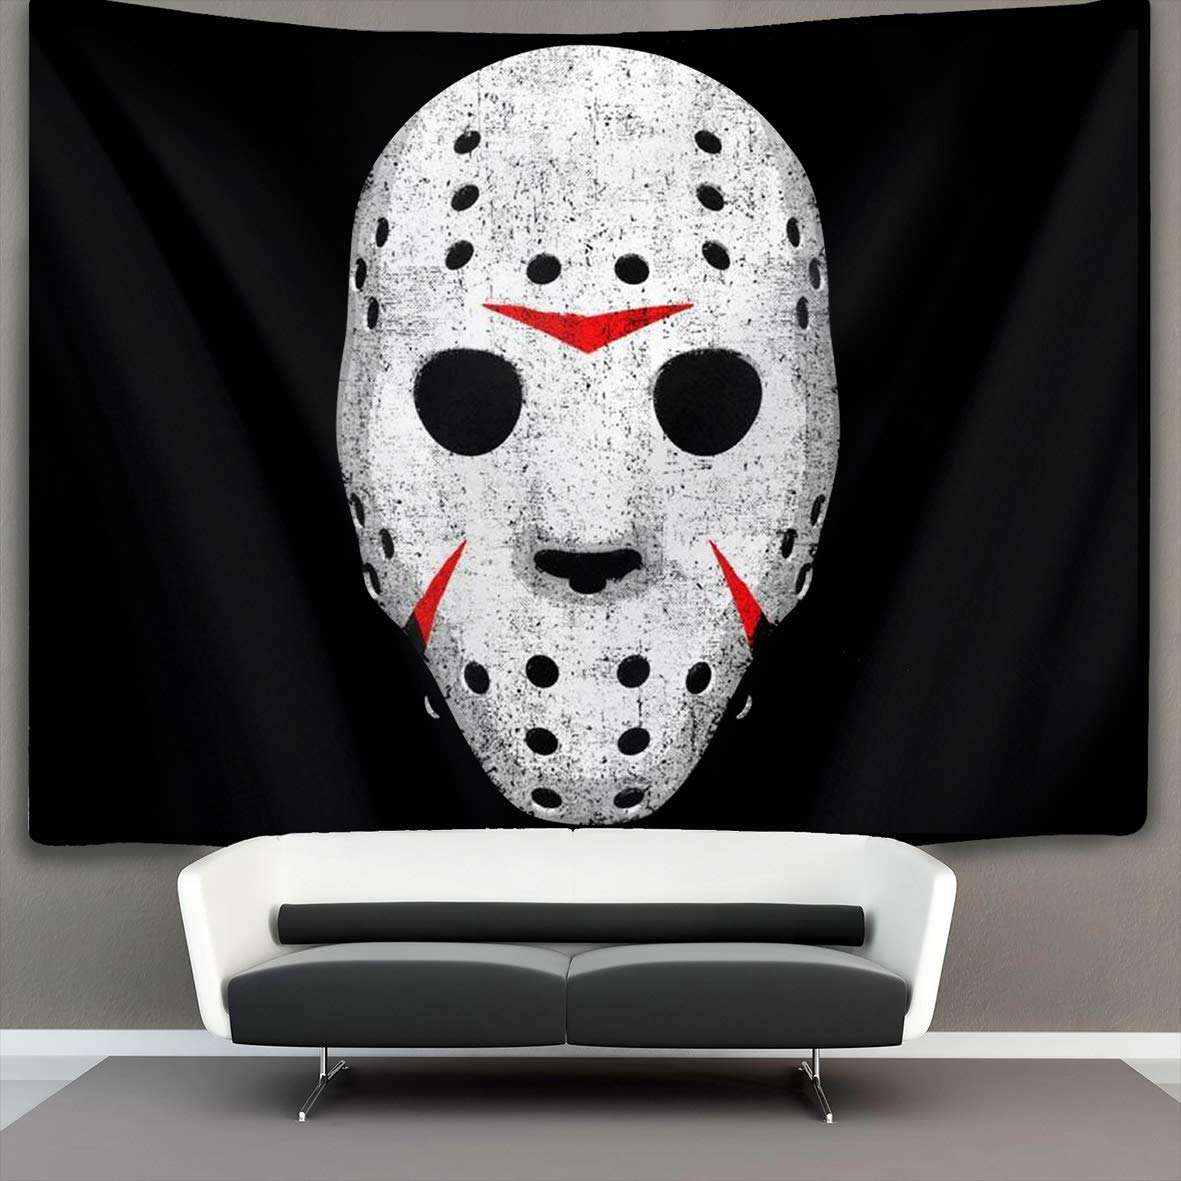 Horror Movie Maniac Wall Tapestry Hippie Art Tapestry Wall Hanging Home Decor Extra Large tablecloths 50x60 inches for Bedroom Living Room Dorm Room